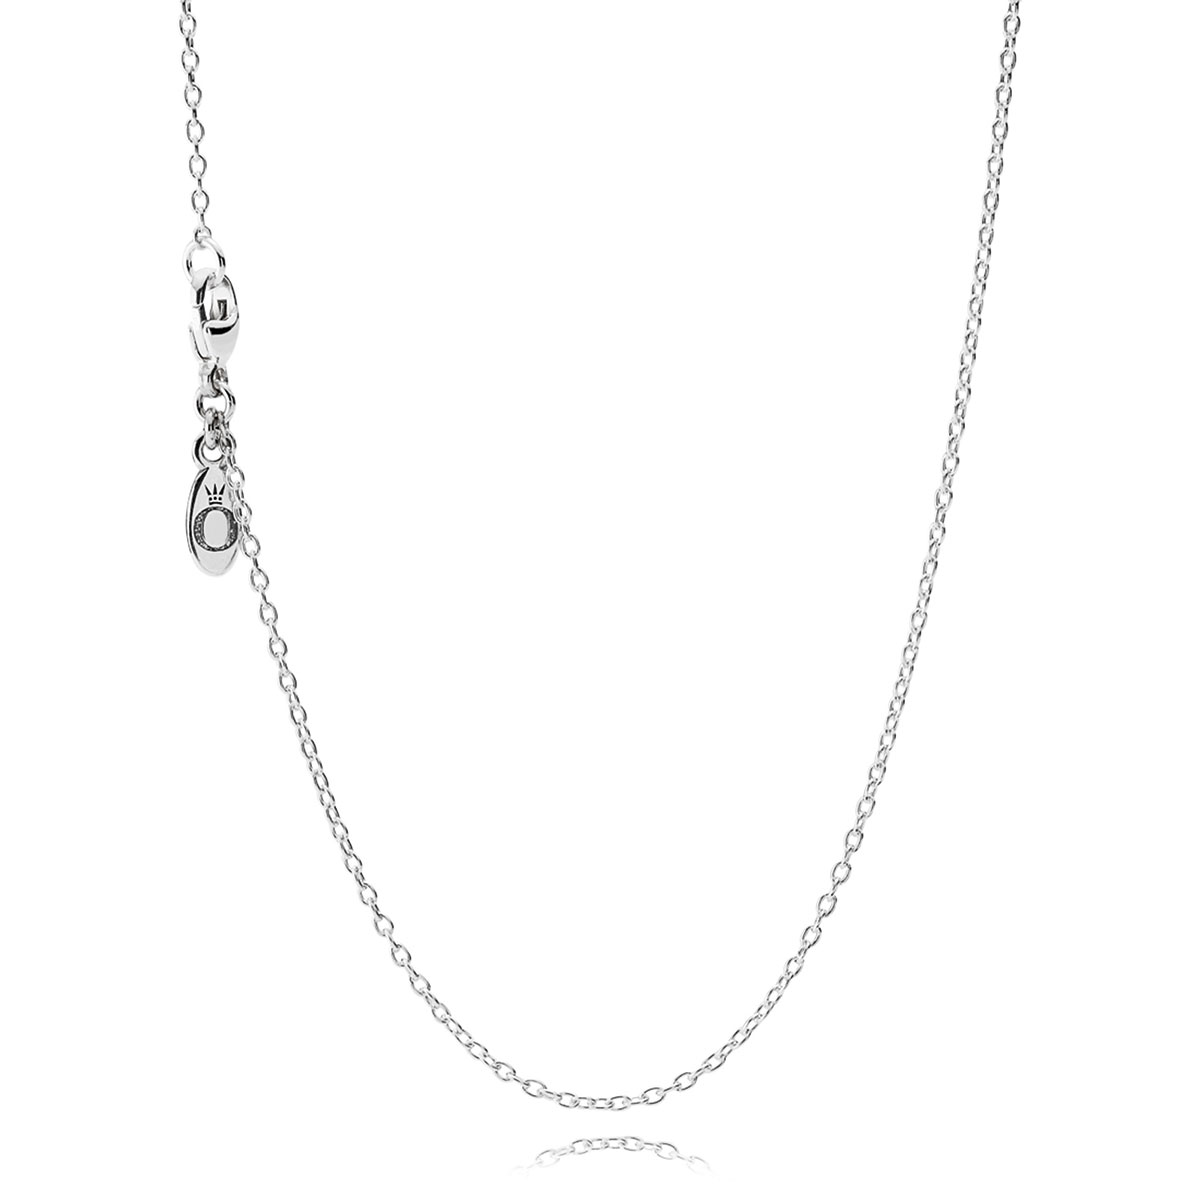 801-712-PANDORA Necklace Chain